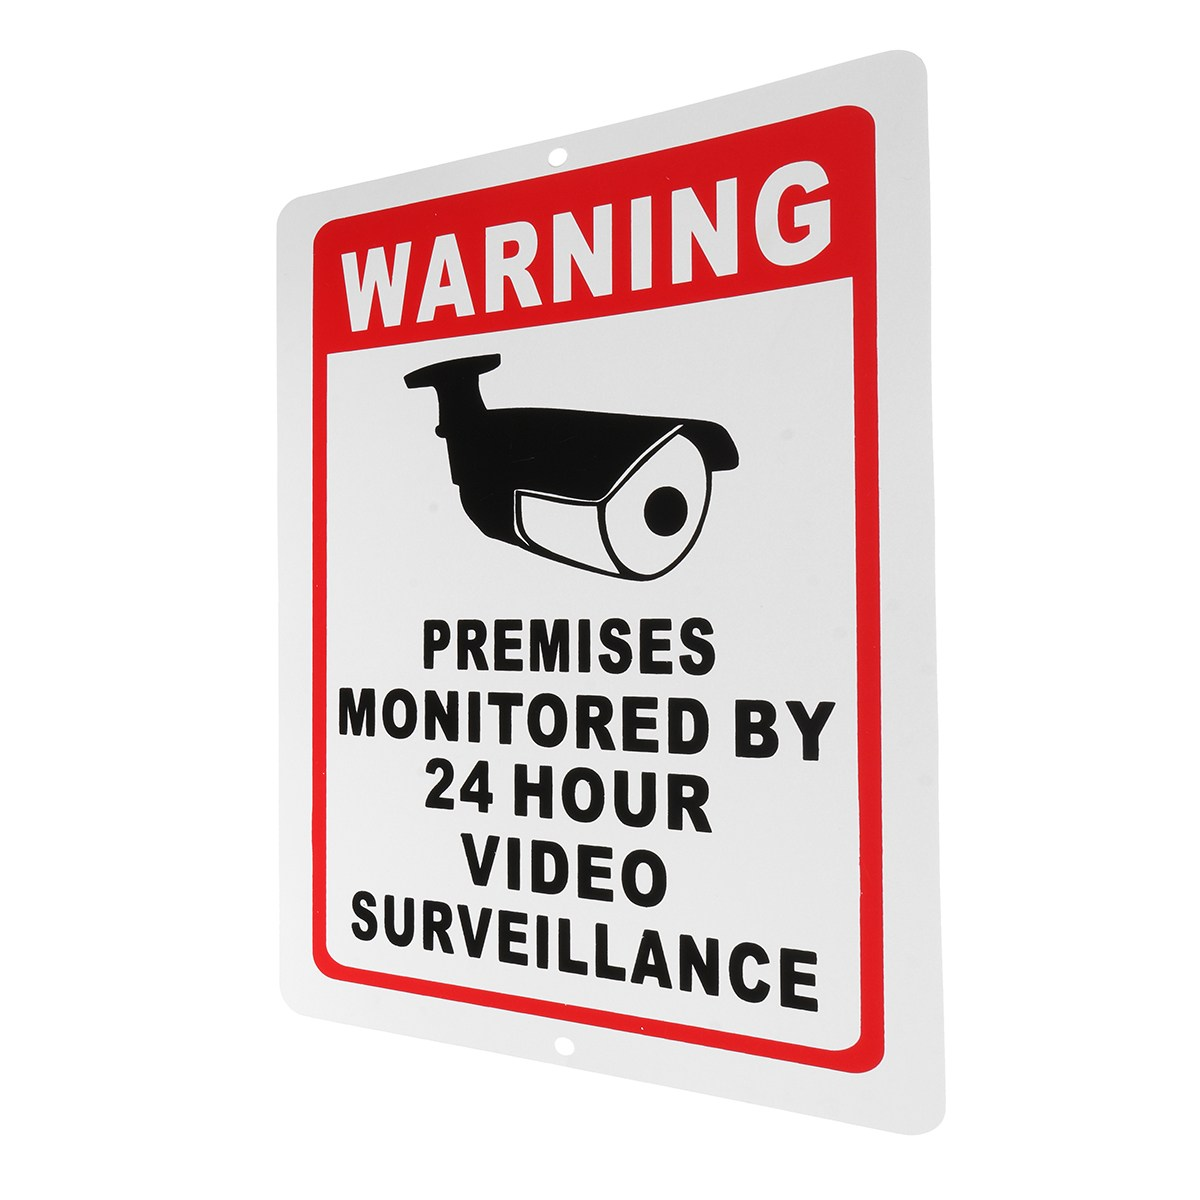 NEW Safurance 18x28cm Home CCTV Surveillance Security Camera Video Sticker Warning Decal Sign Home Safety